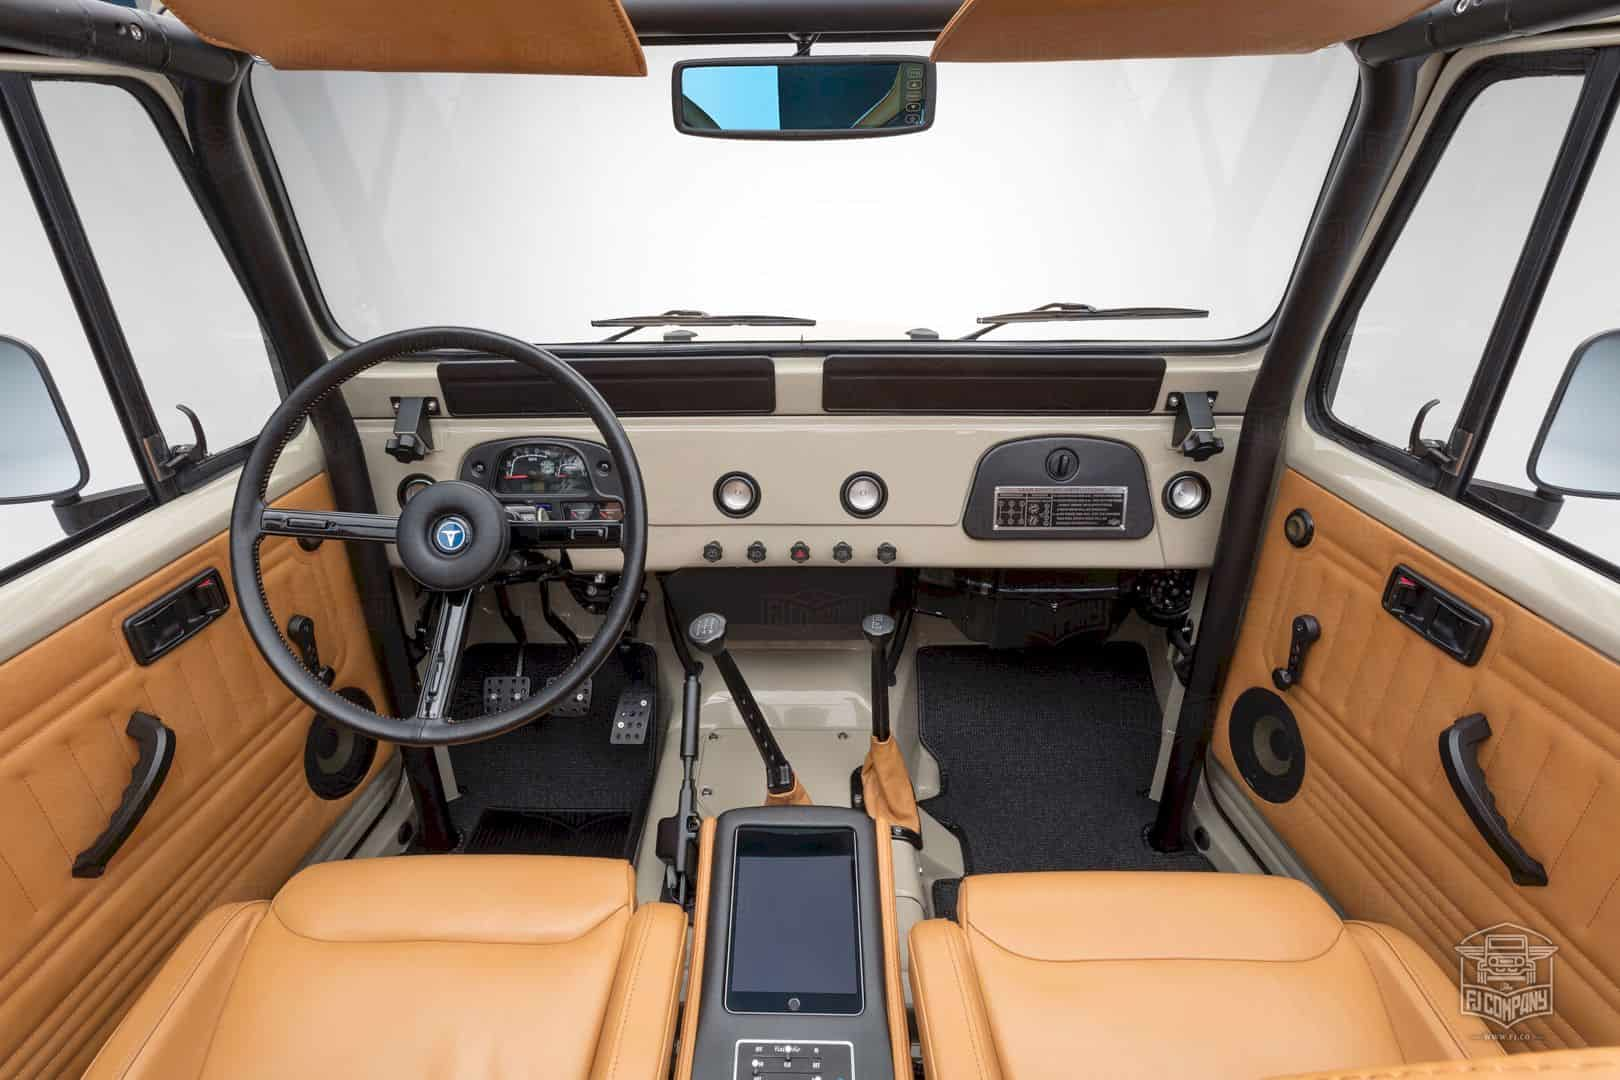 1981 Toyota Land Cruiser Fj43 Matte Dune Beige The Fj Of